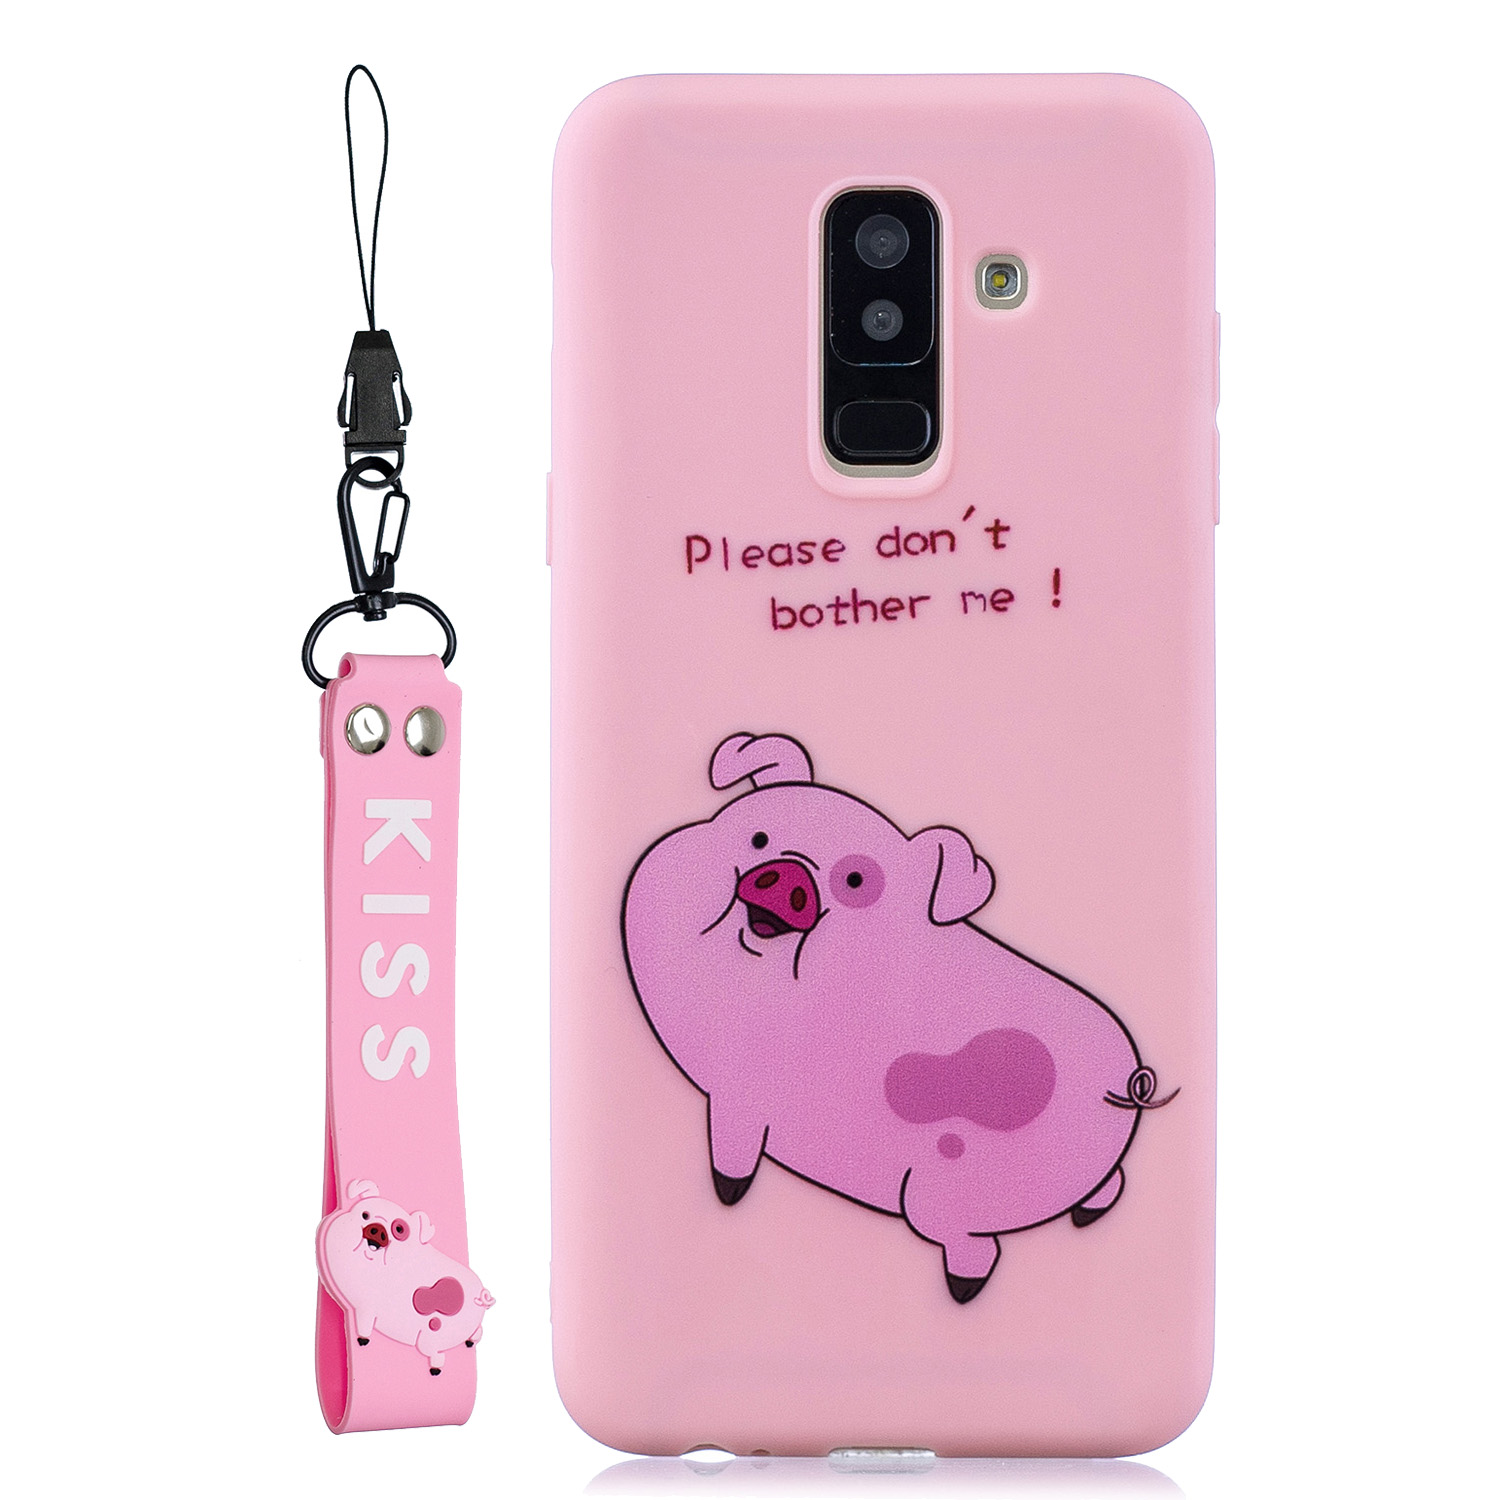 For Samsung A6 plus 2018 Cute Coloured Painted TPU Anti-scratch Non-slip Protective Cover Back Case with Lanyard Rose red